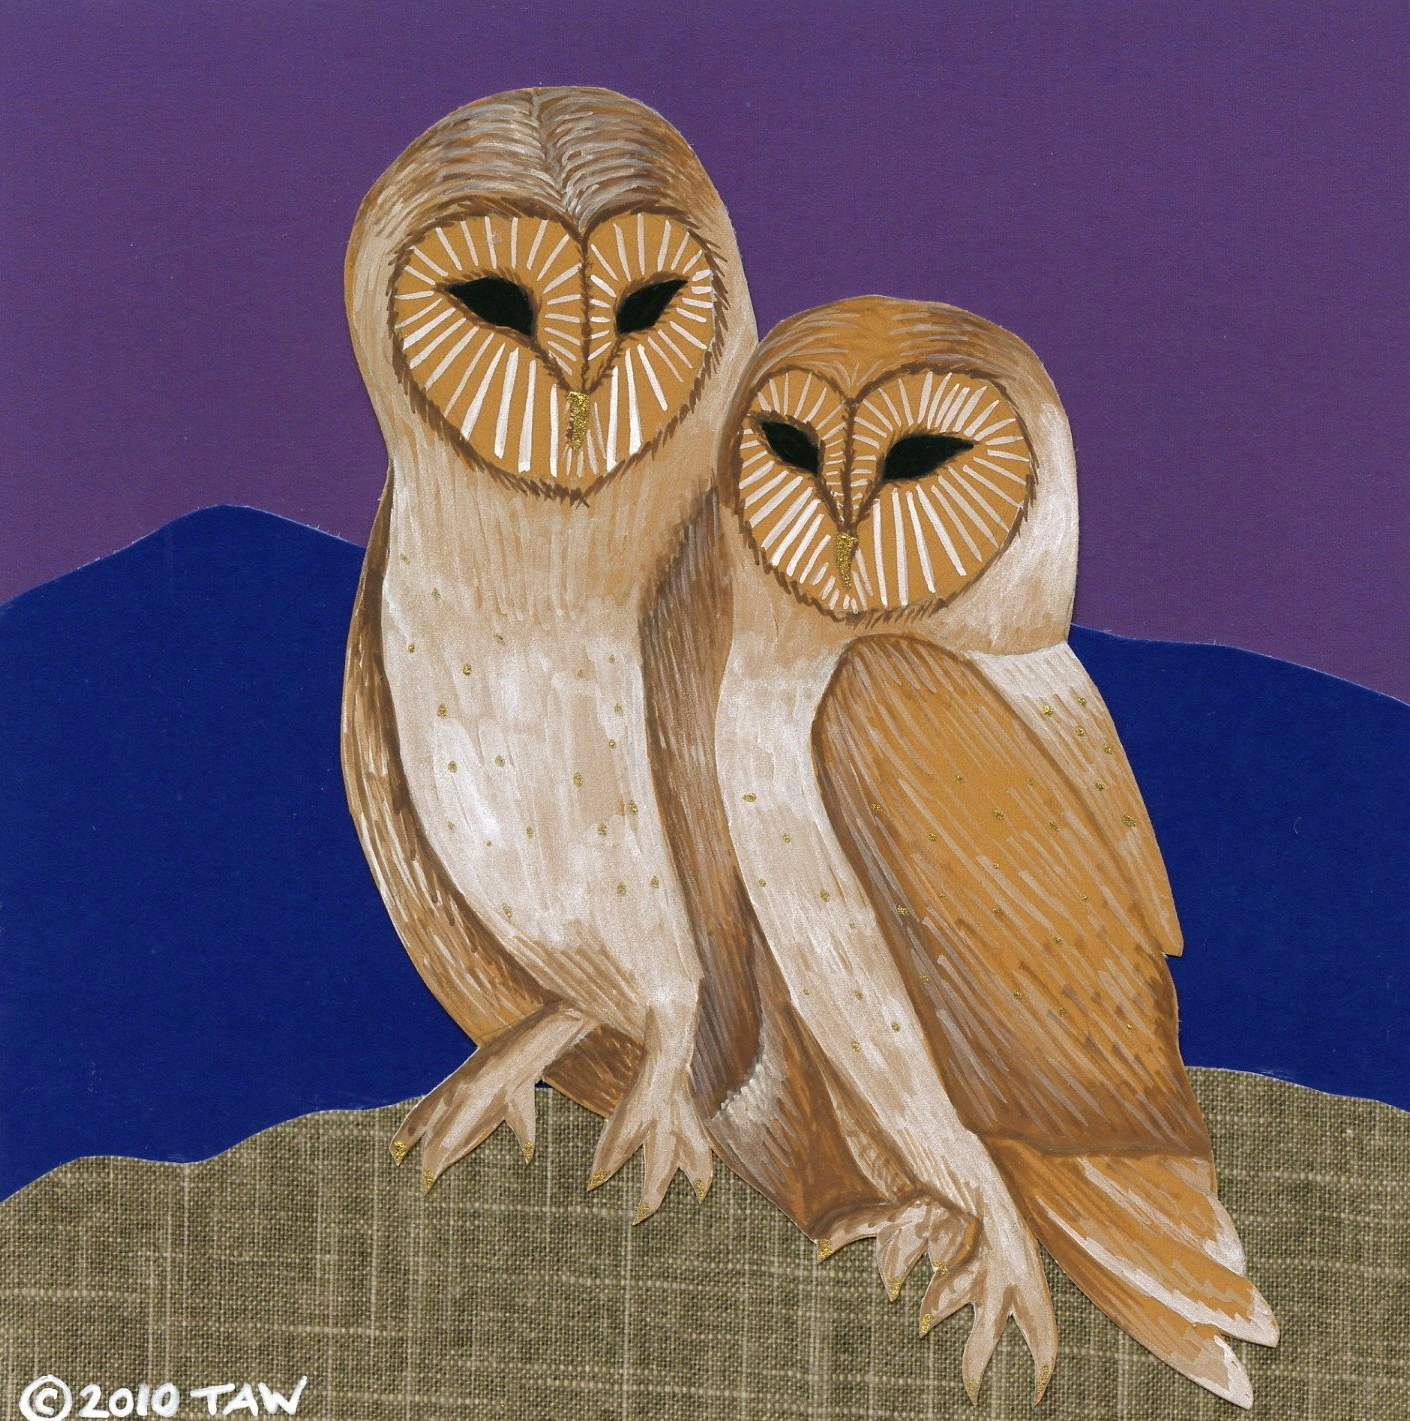 Twilight Barn Owls.jpg